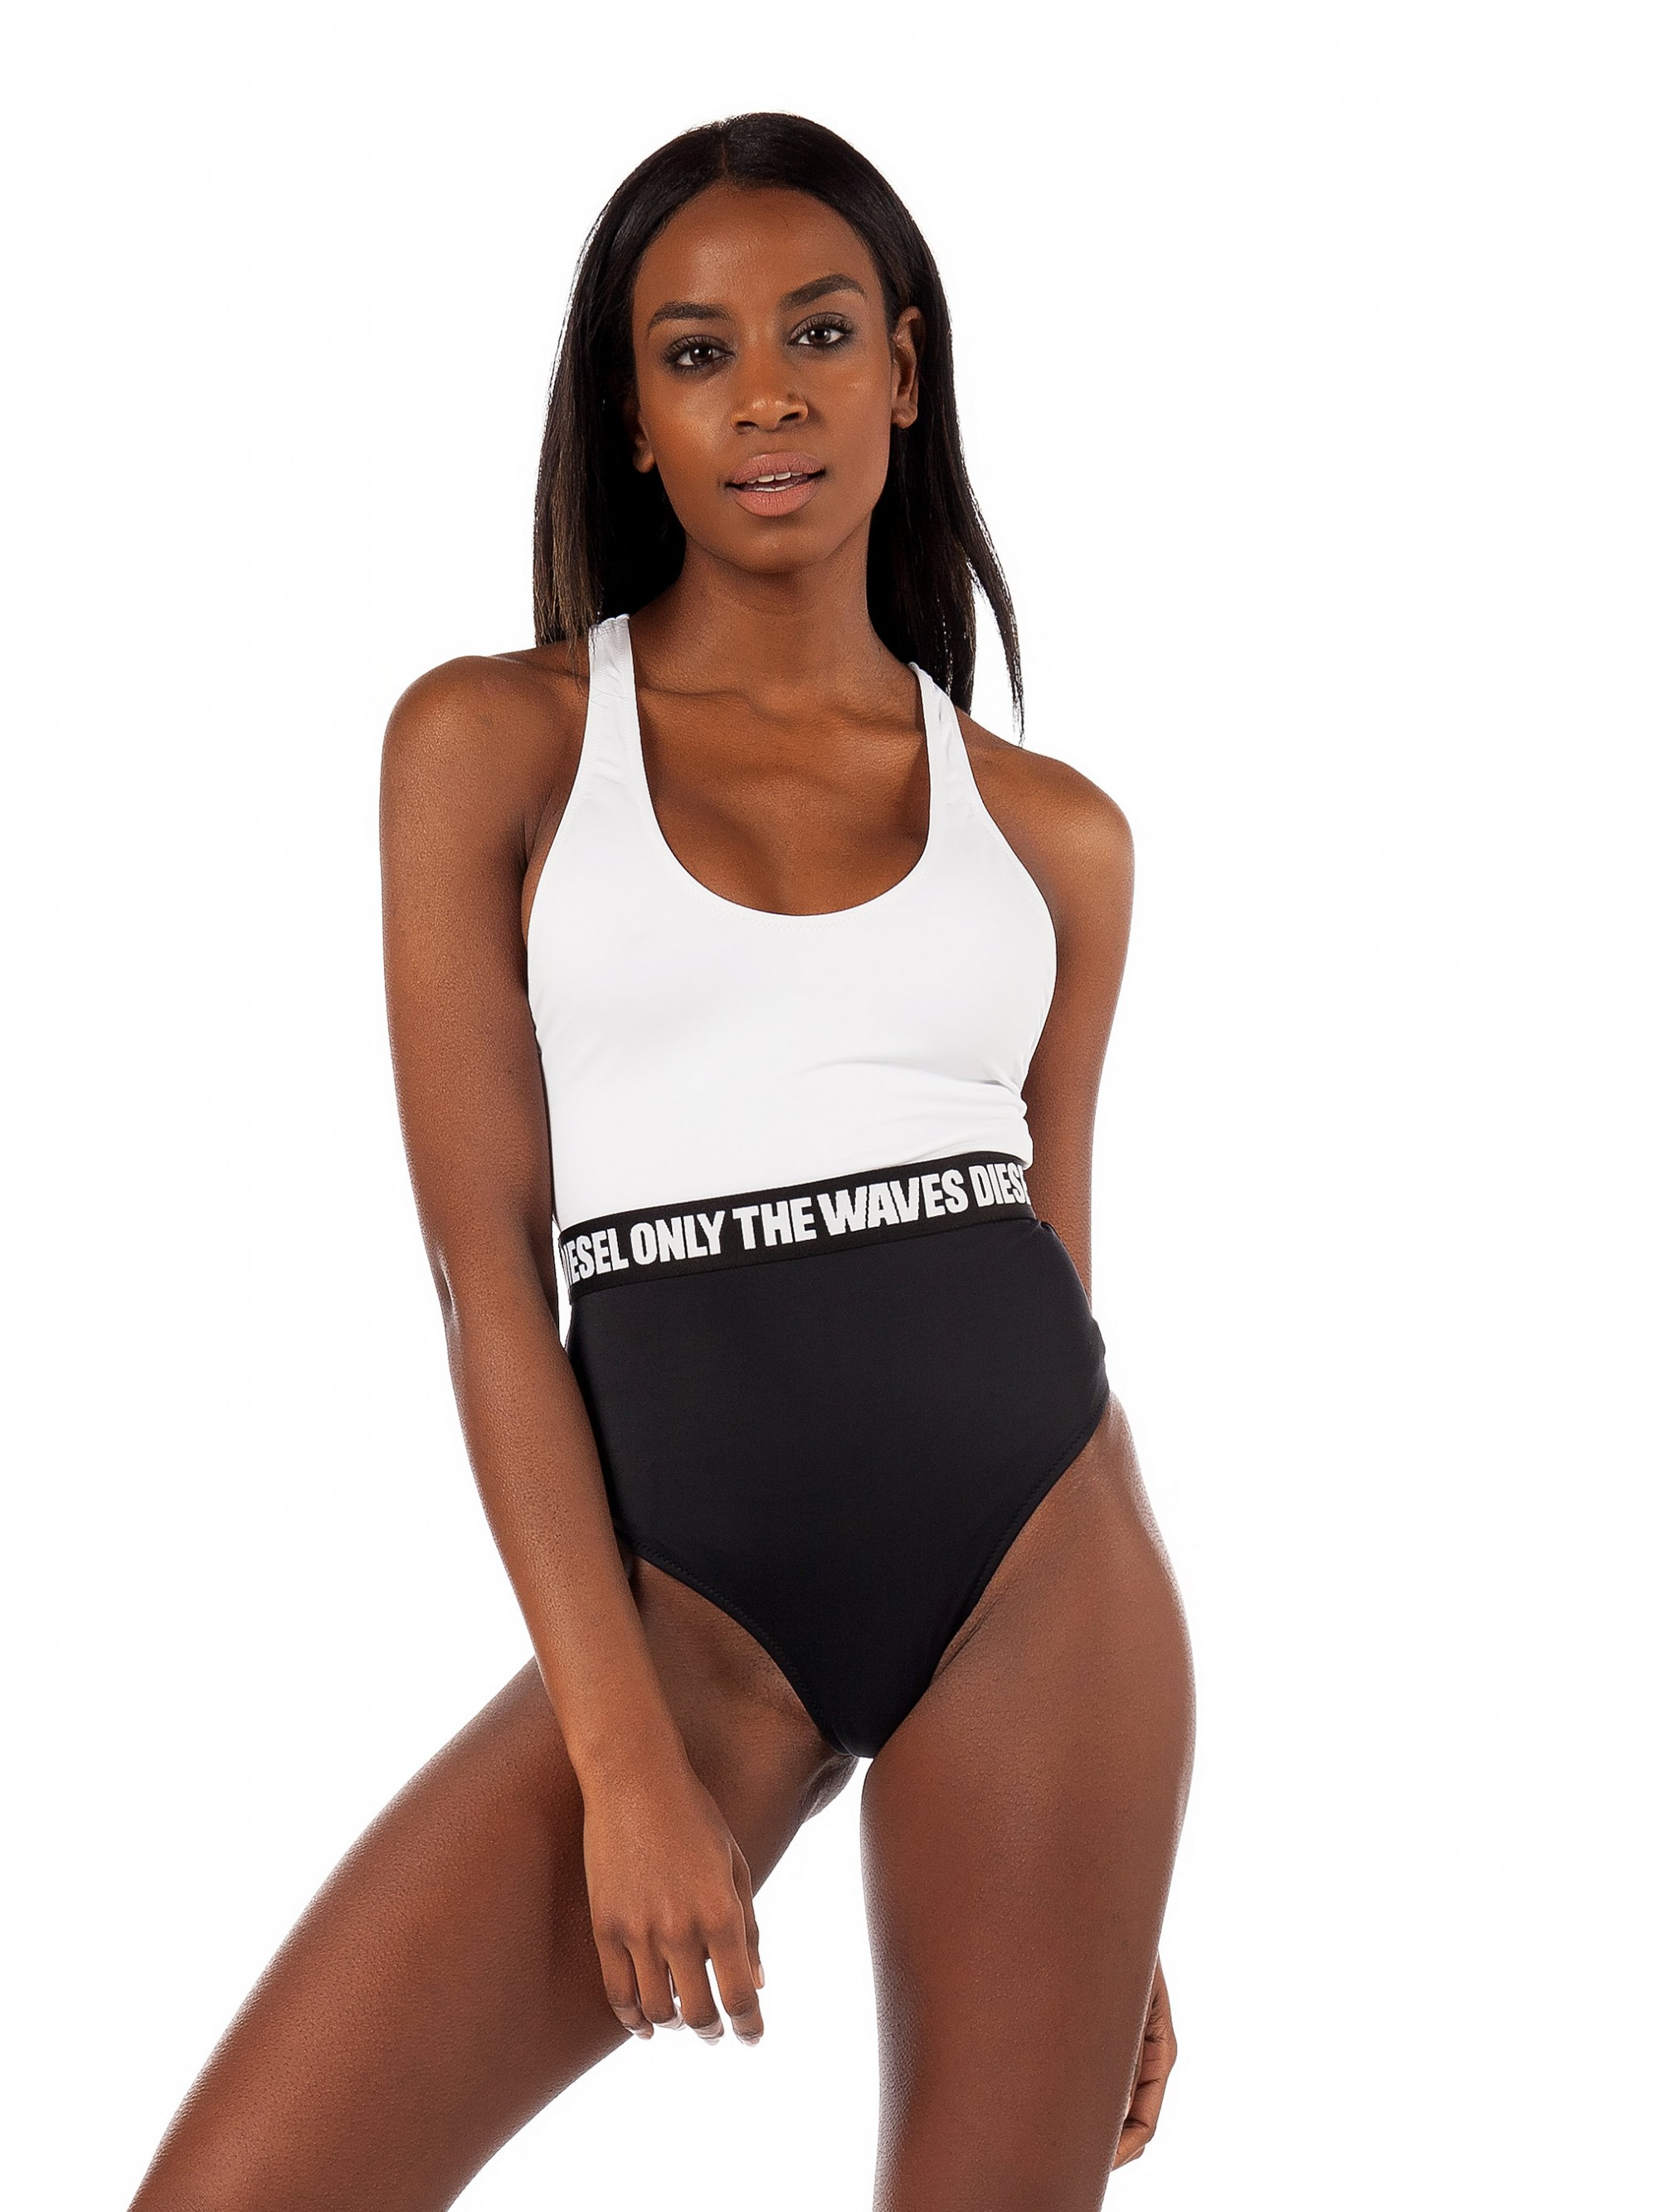 28b968f967c552 Diesel Swimsuit Bfsw-Holy-White. Home · Women · Accessories Bags & Swimwear;  Diesel Swimsuit Bfsw-Holy-White